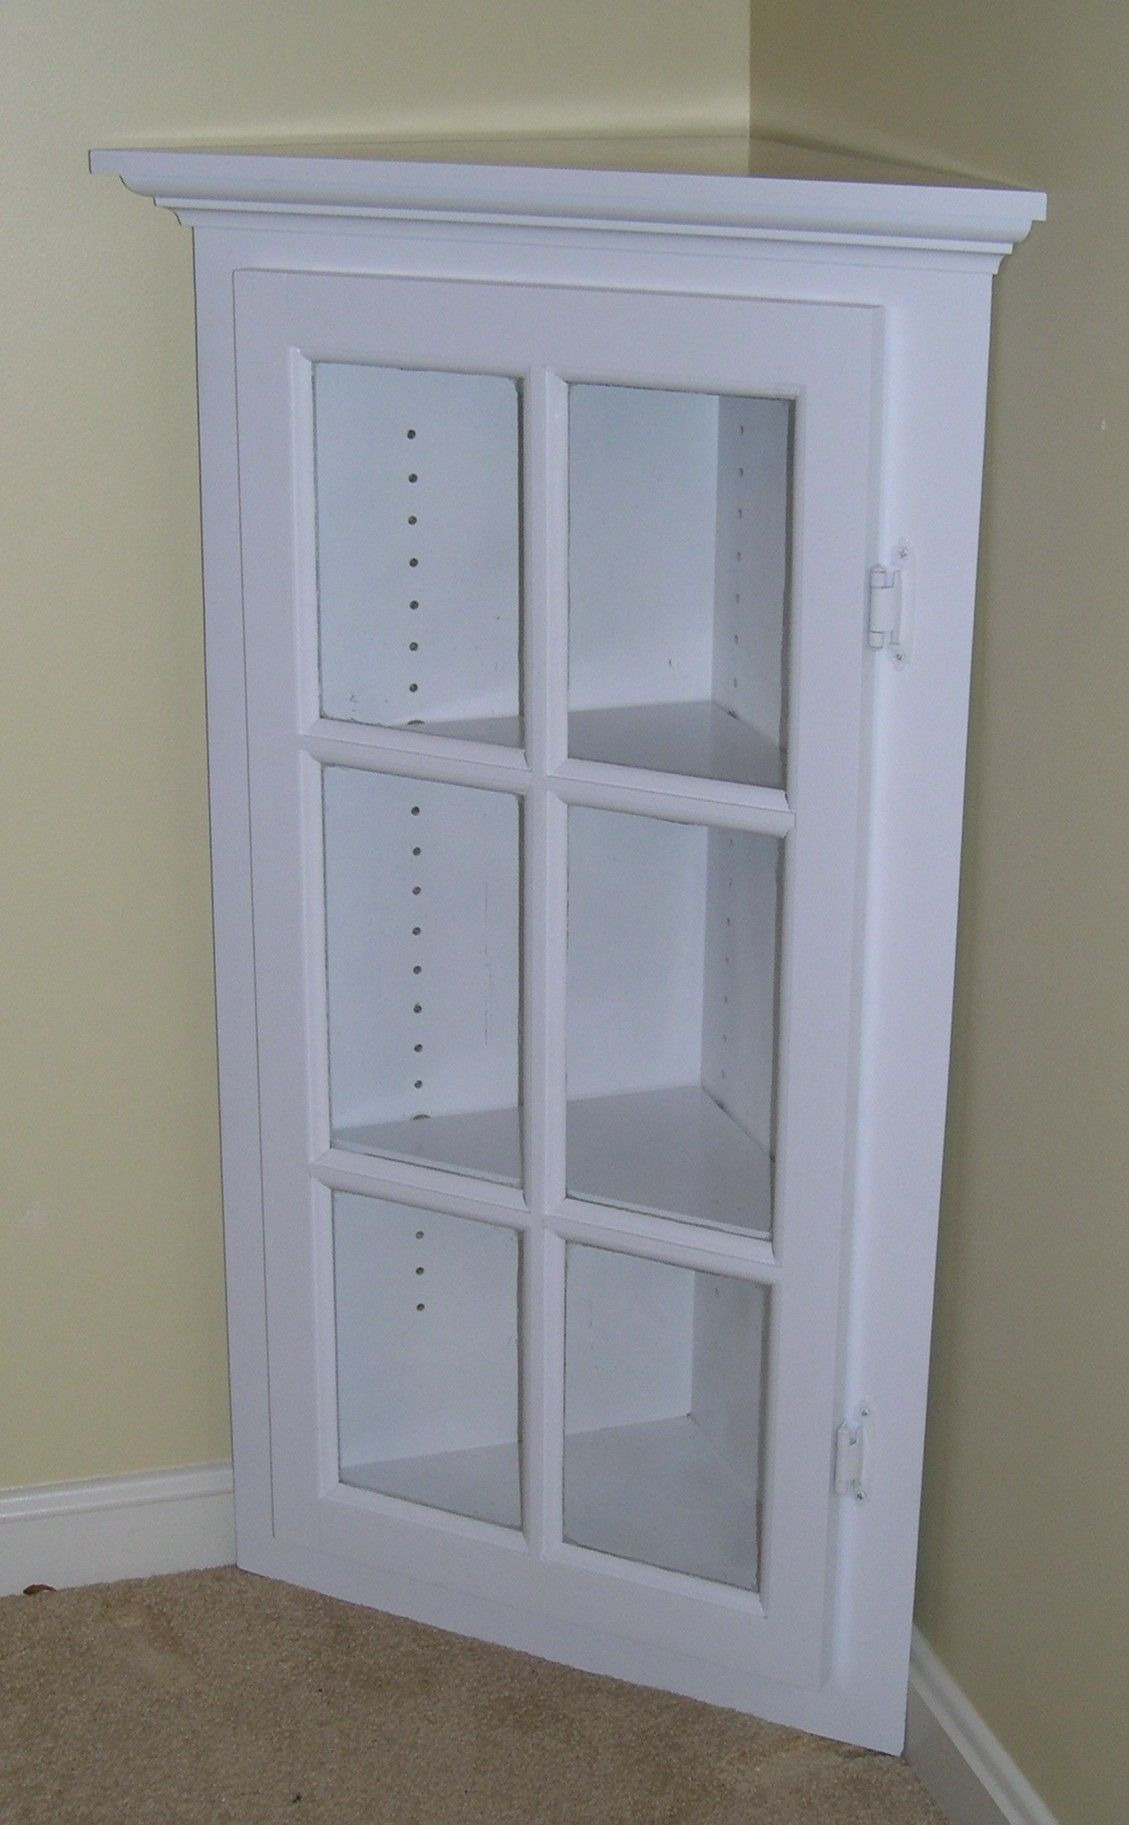 Corner Storage Cabinet with Doors Awesome White Corner Cabinet with Glass Doors